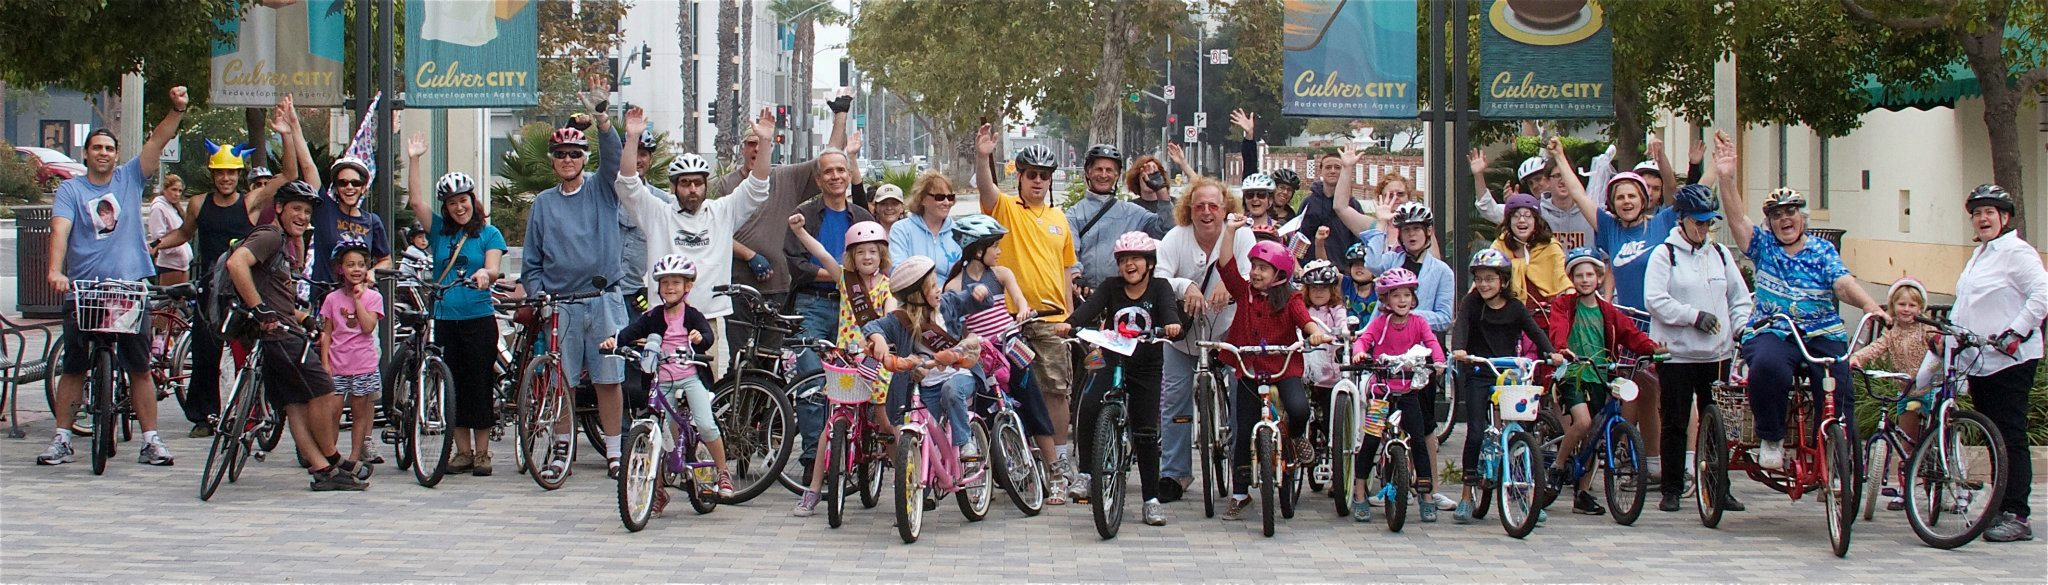 Culver City Bike Parade